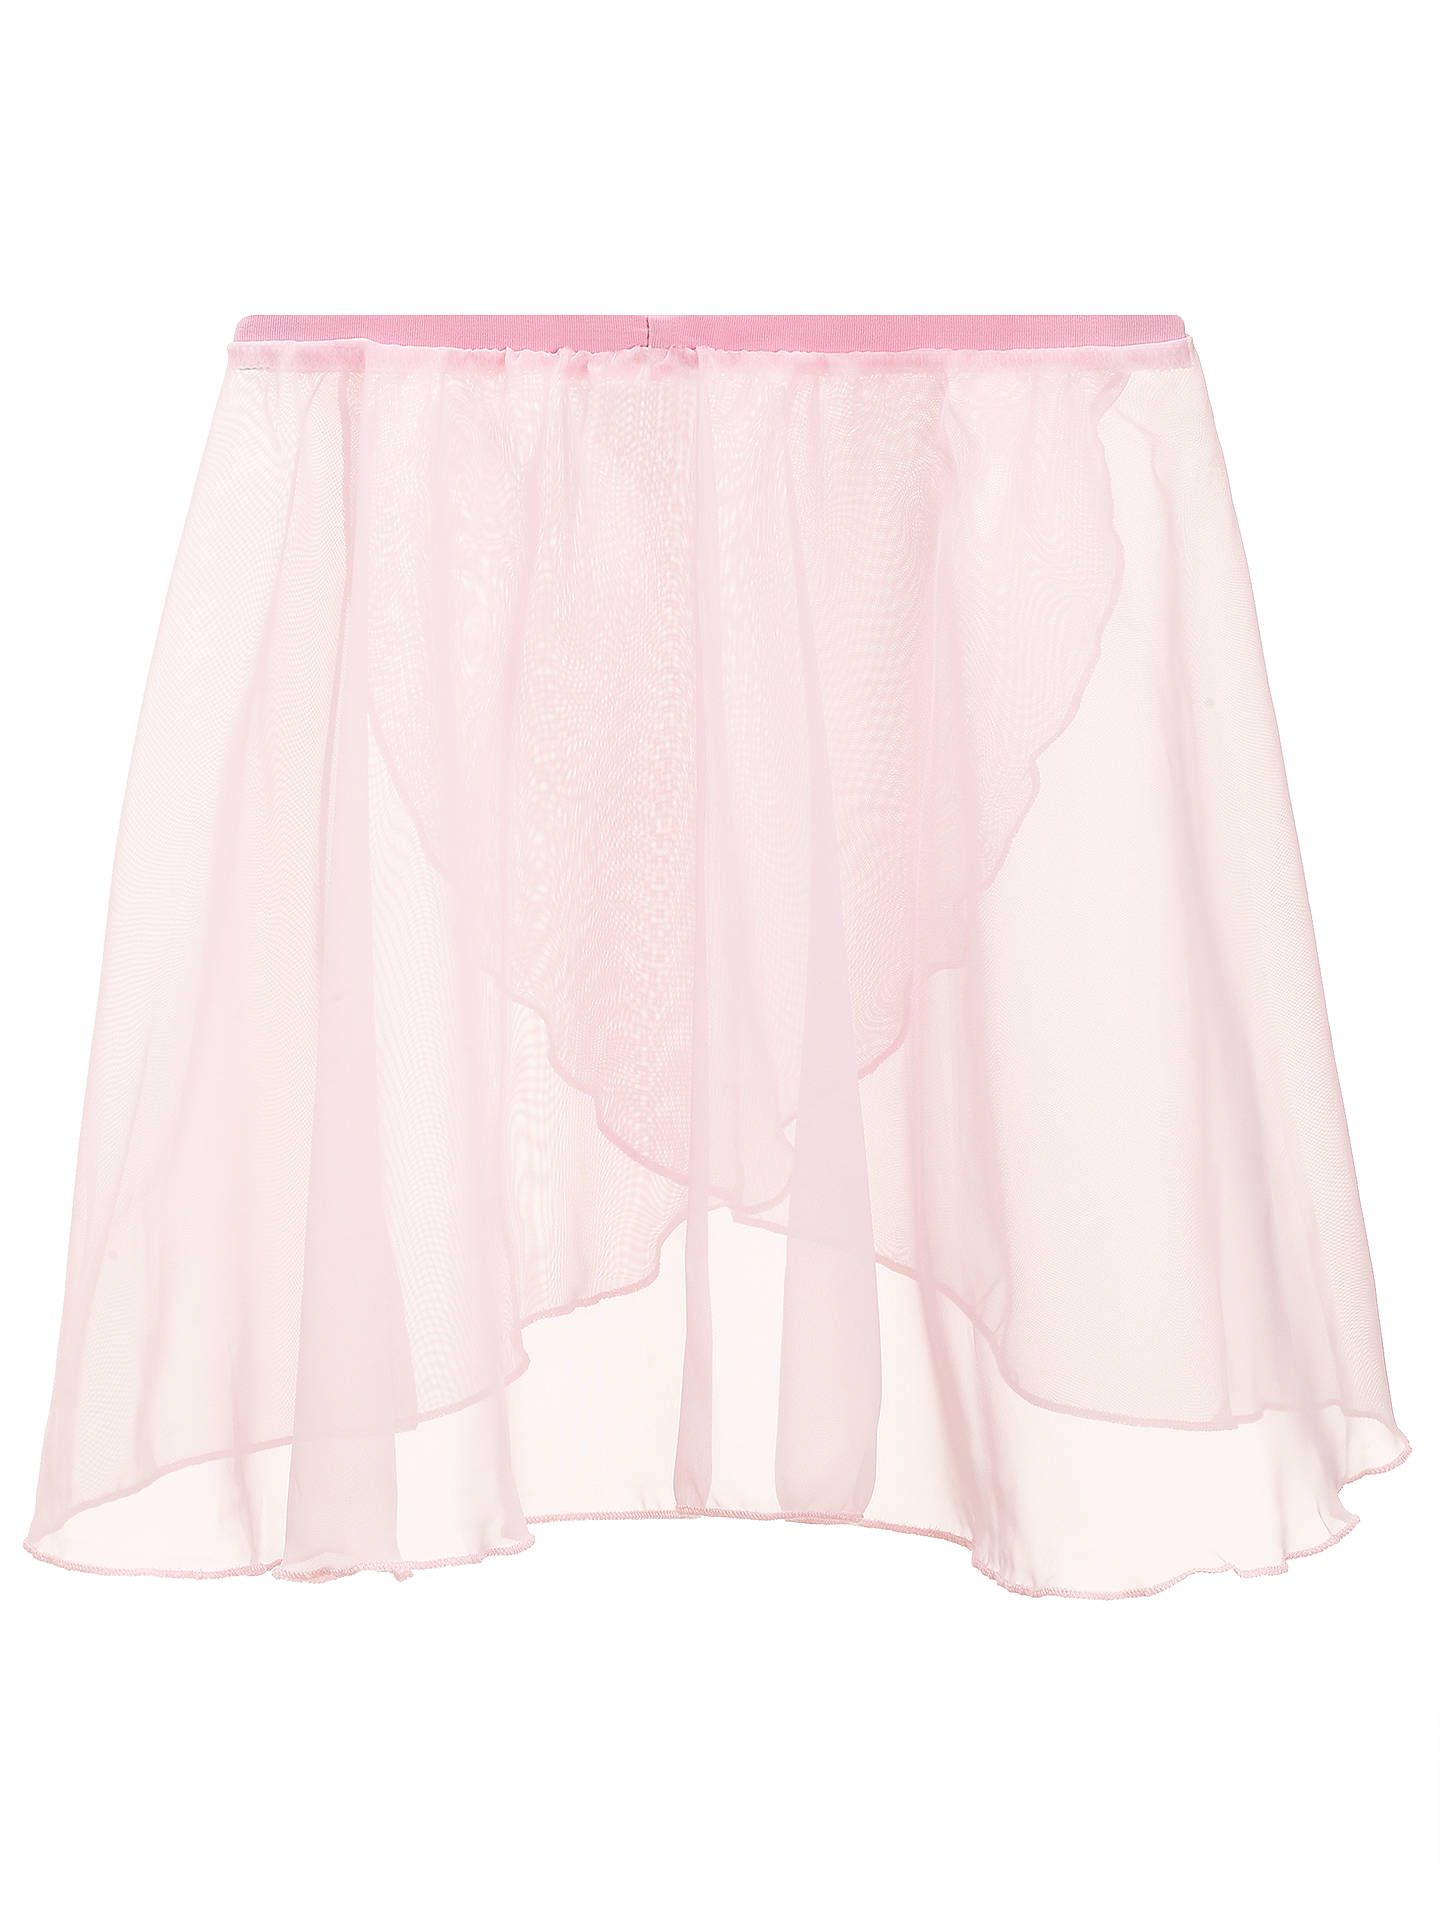 "BuyRoyal Academy Of Dance Cross Over Skirt, Pink, Waist 18"" Online at johnlewis.com"